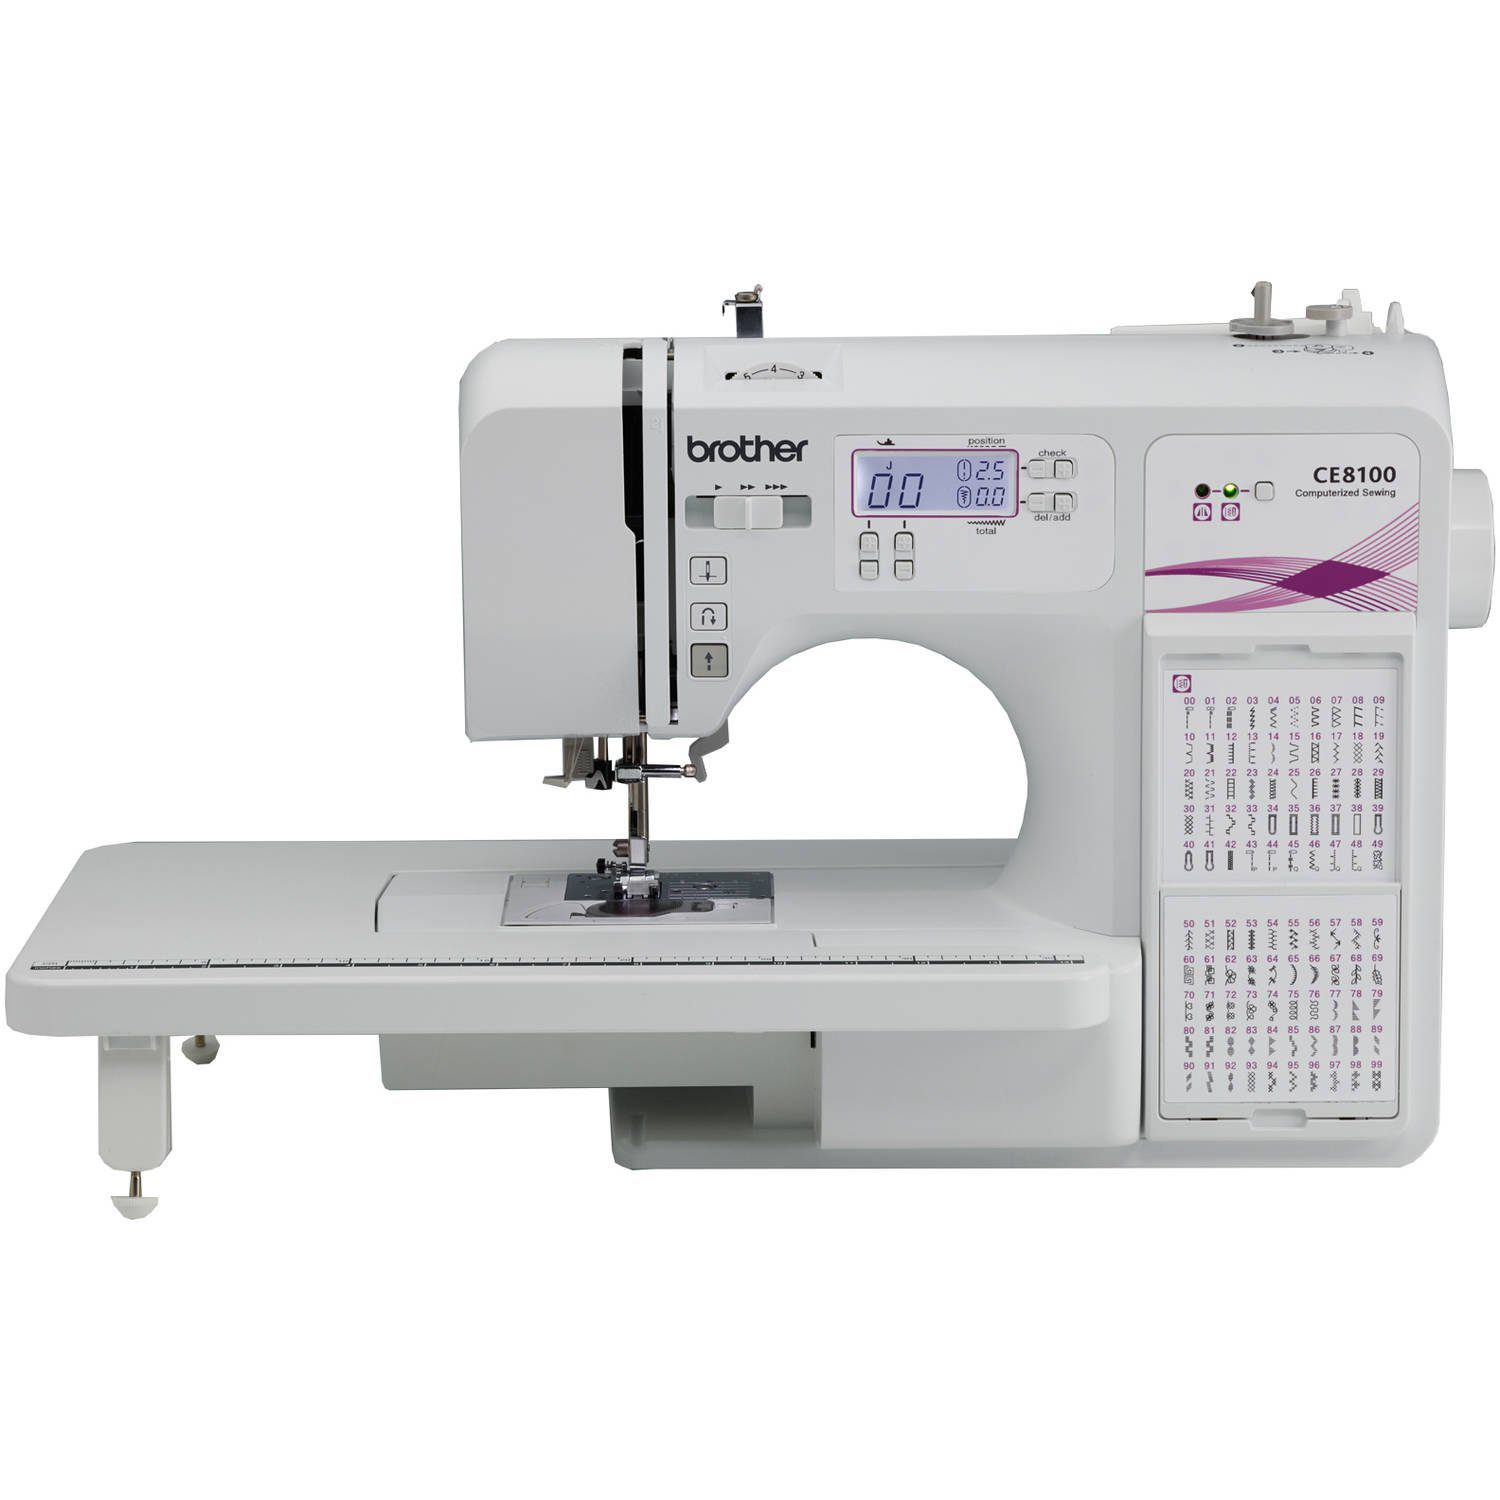 brother ce8100 quilting machine